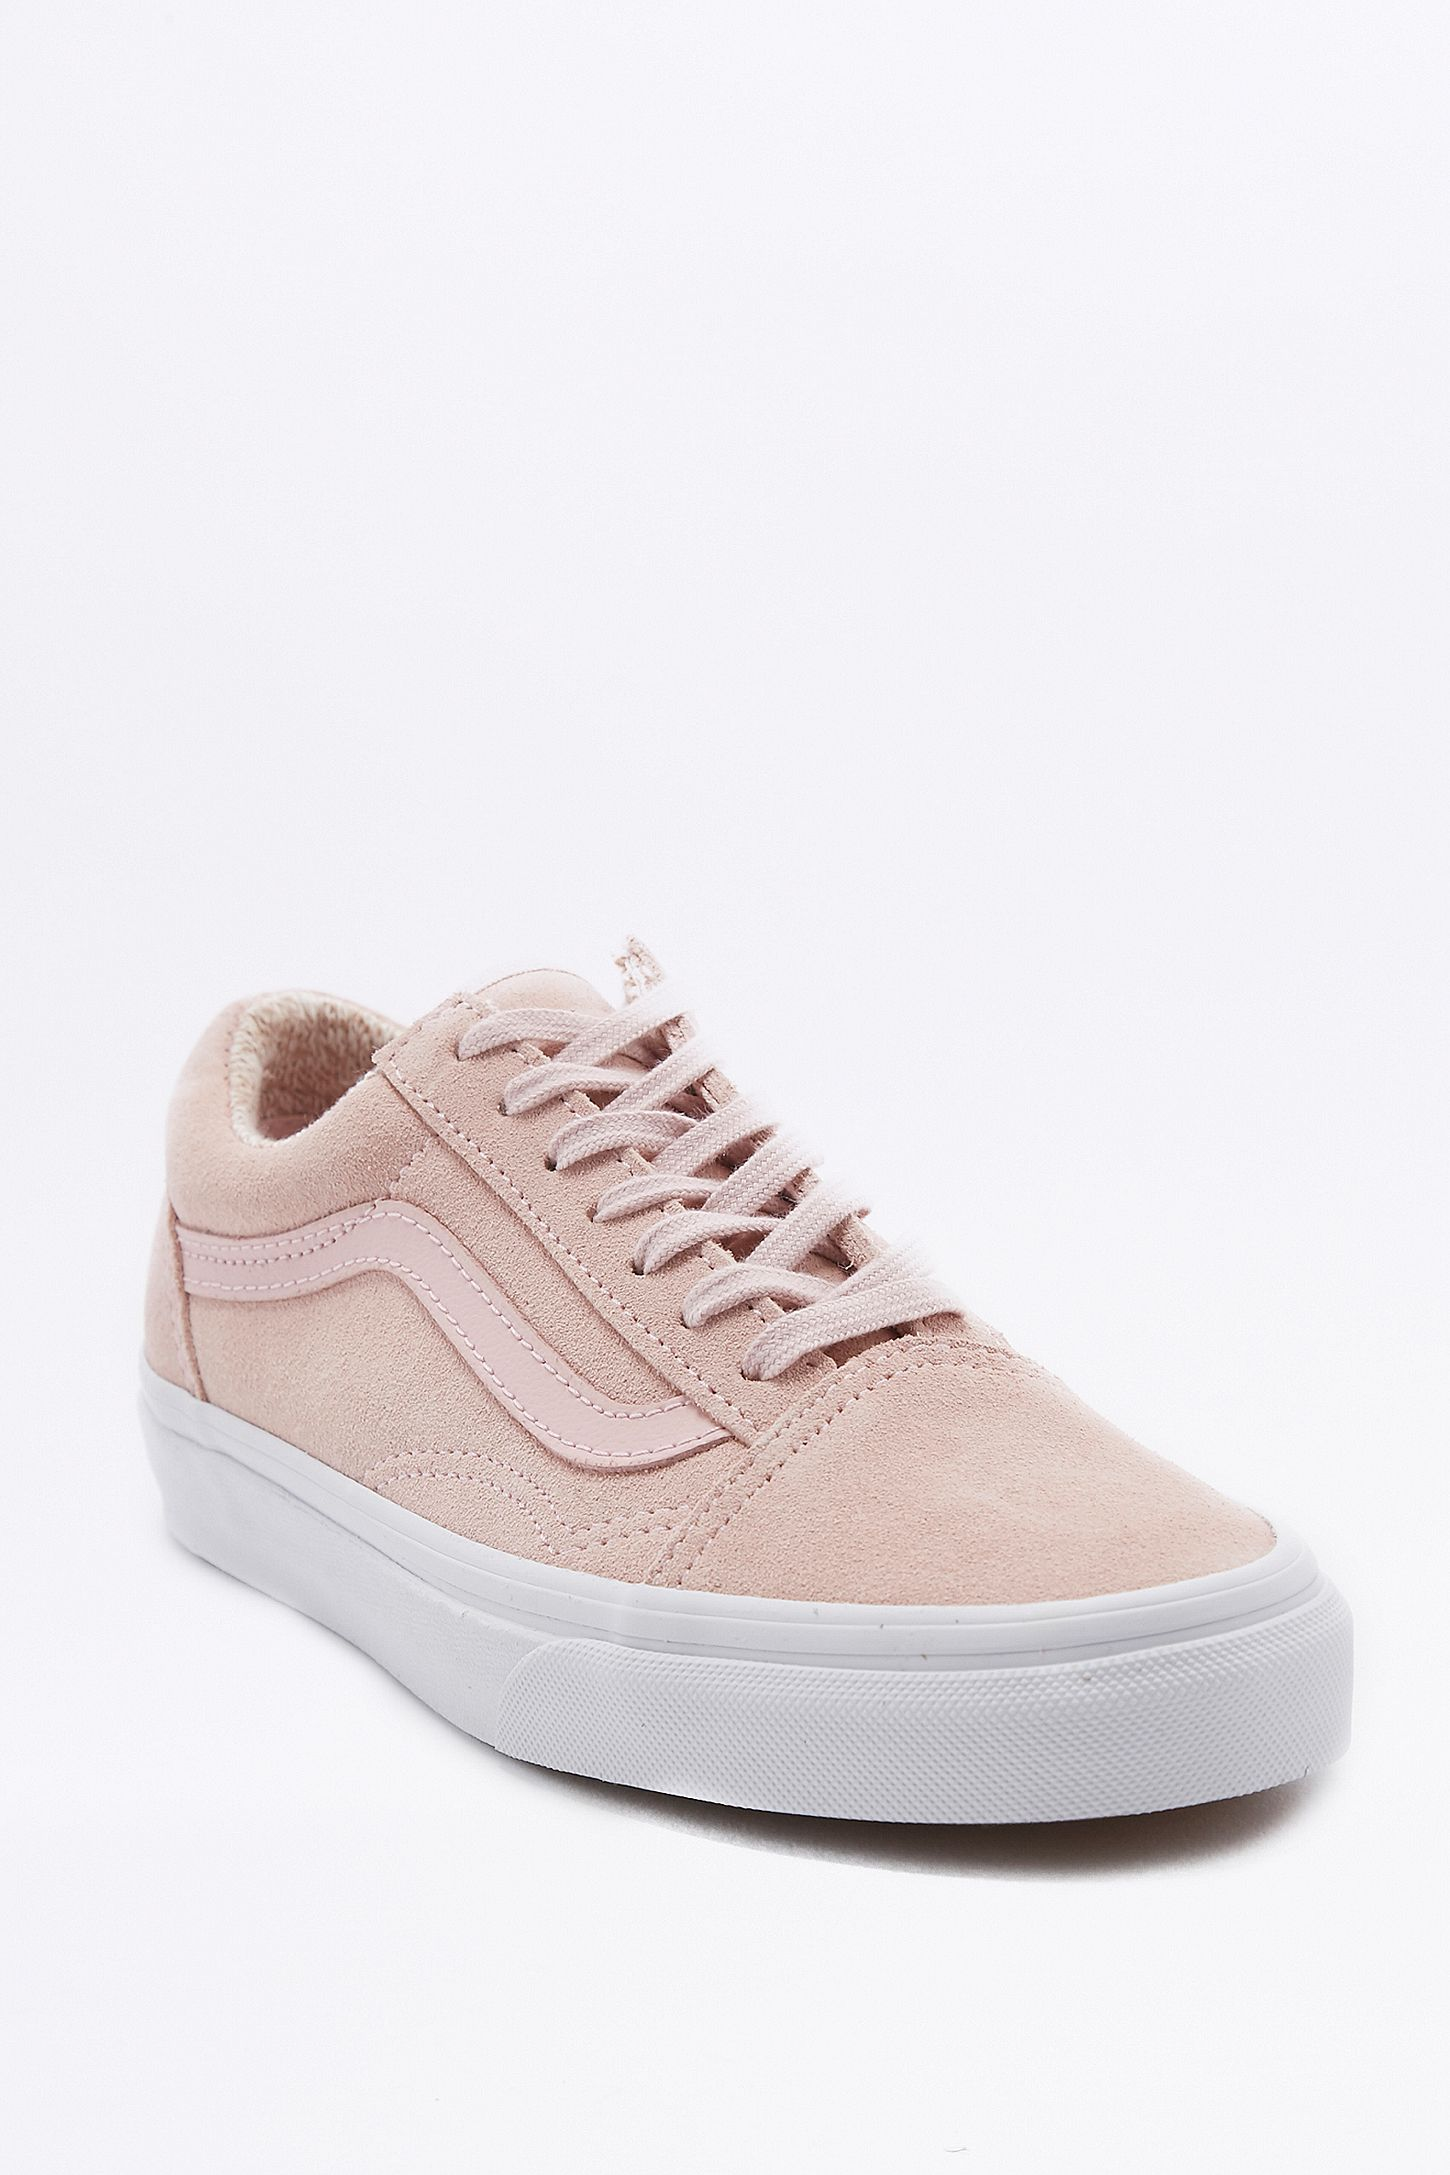 b67e47dd5d45 Vans Old Skool Pink Suede Trainers. Click on image to zoom. Hover to zoom.  Double Tap to Zoom